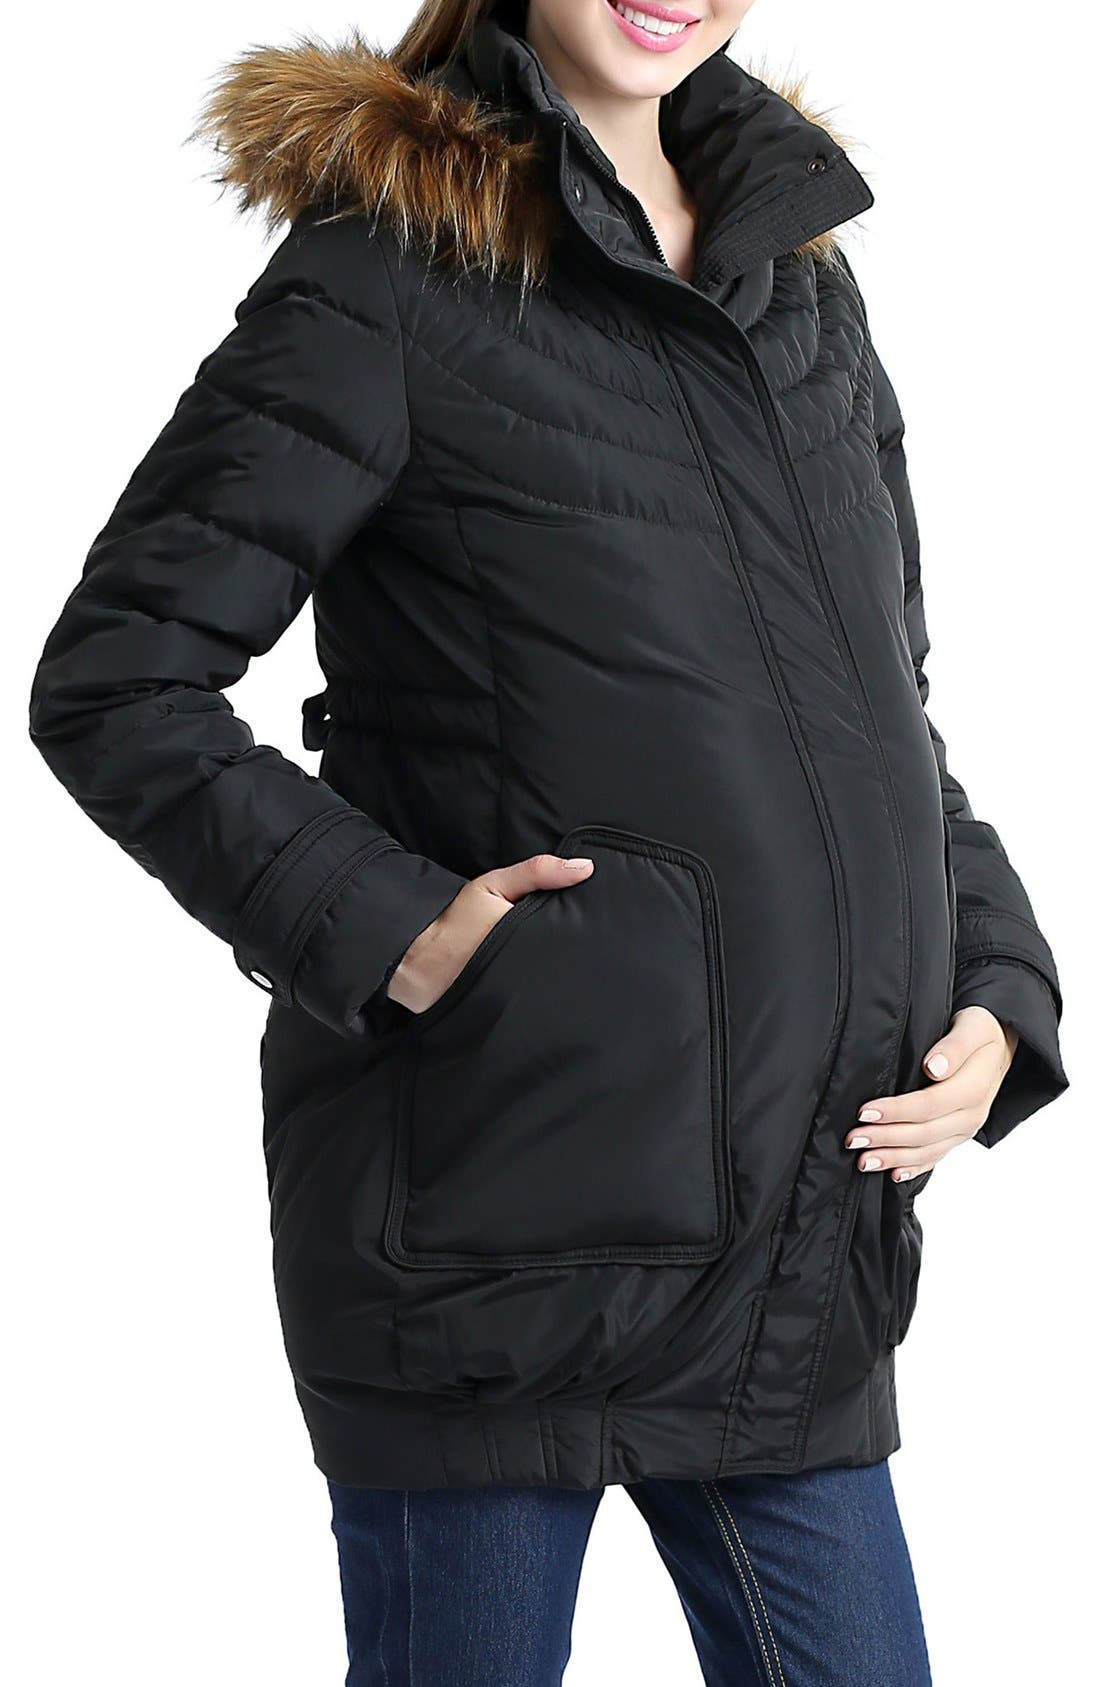 'Arlo' Water Resistant Down Maternity Parka with Baby Carrier Cover Inset,                             Alternate thumbnail 2, color,                             BLACK